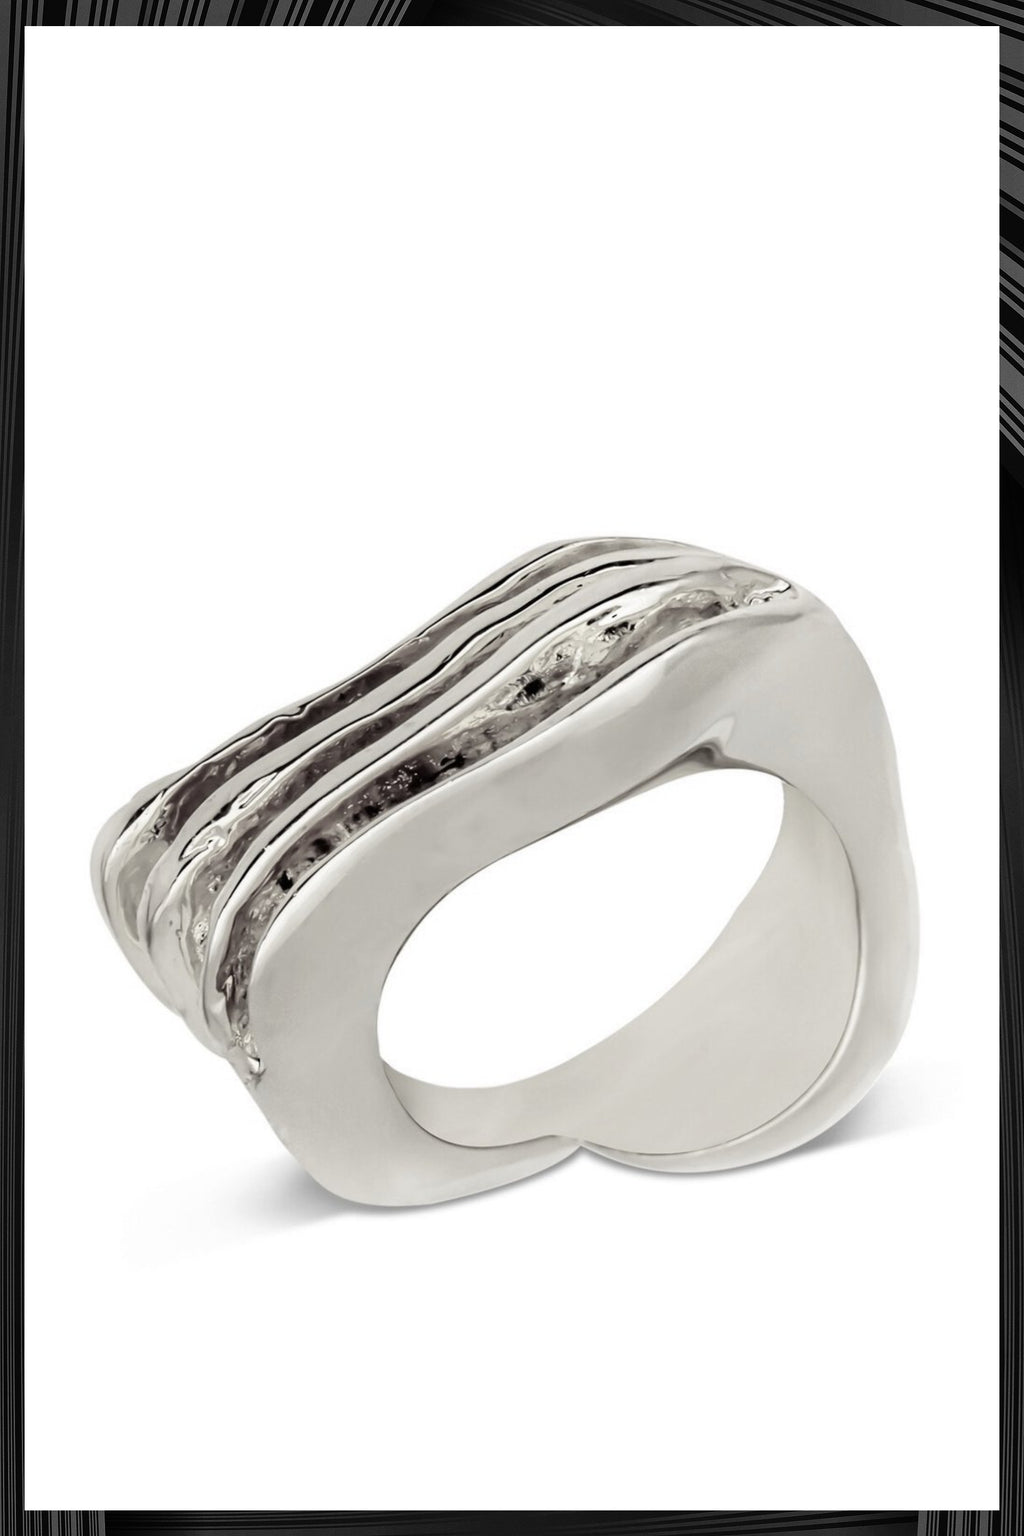 Wave Break Small Ring | Free Delivery - 2-3 Weeks Shipping